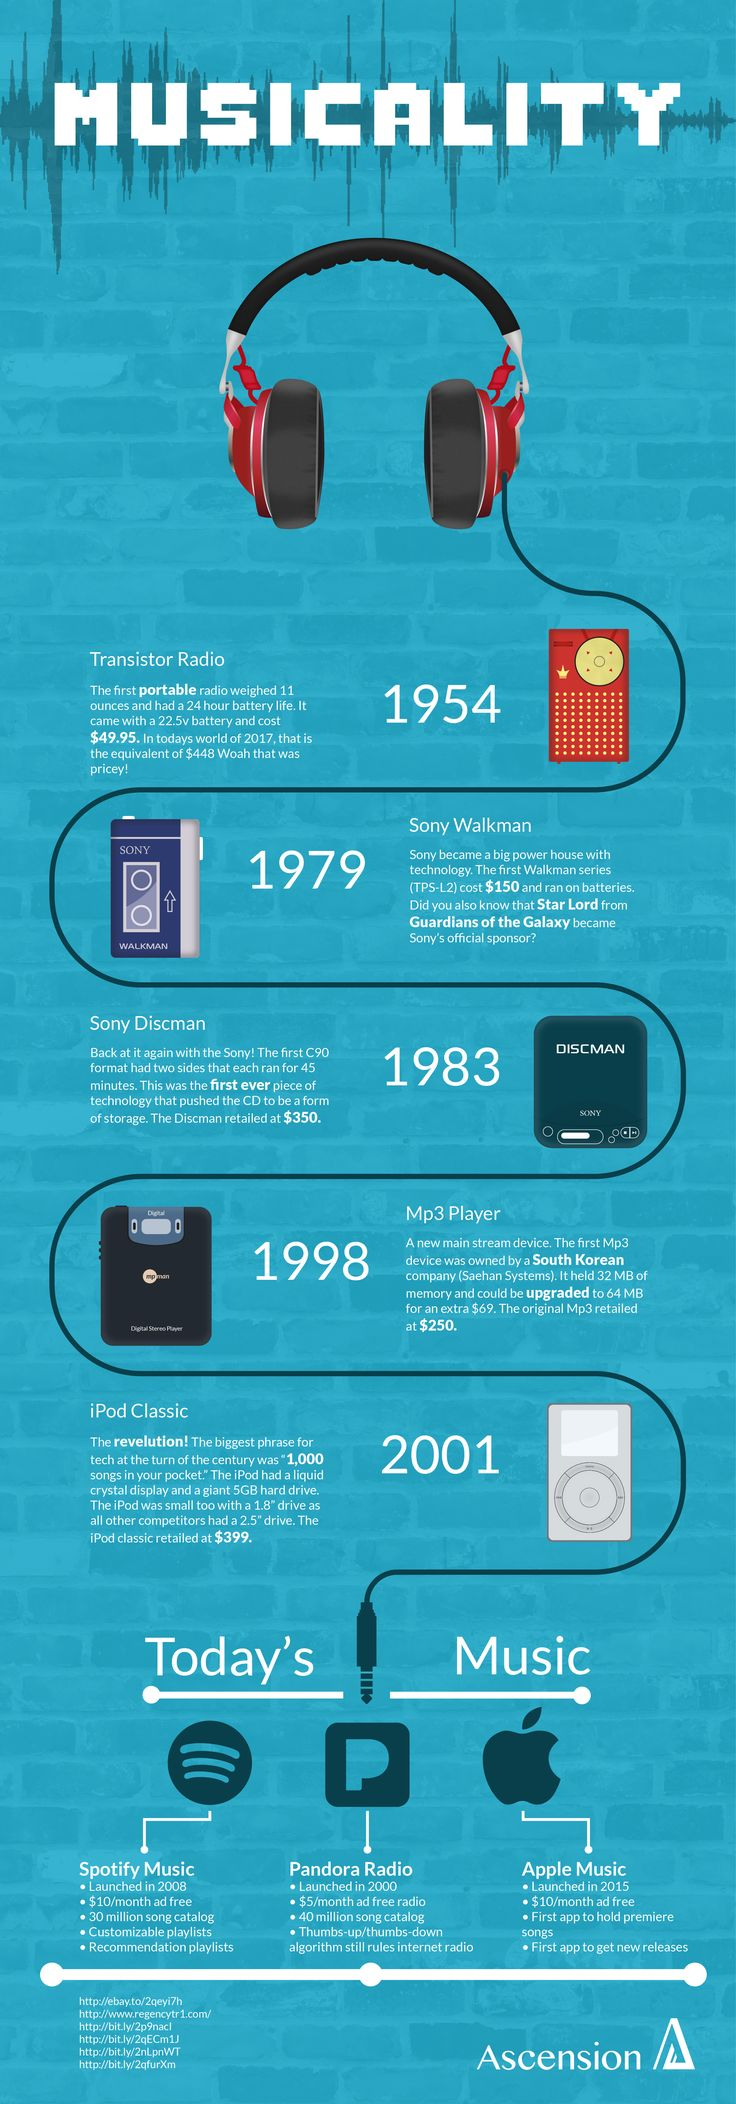 I created this infographic to be a musical journey of history showing the evolution of the first hand-held devices with headphones to today's top streaming companies. MUSICALITY!